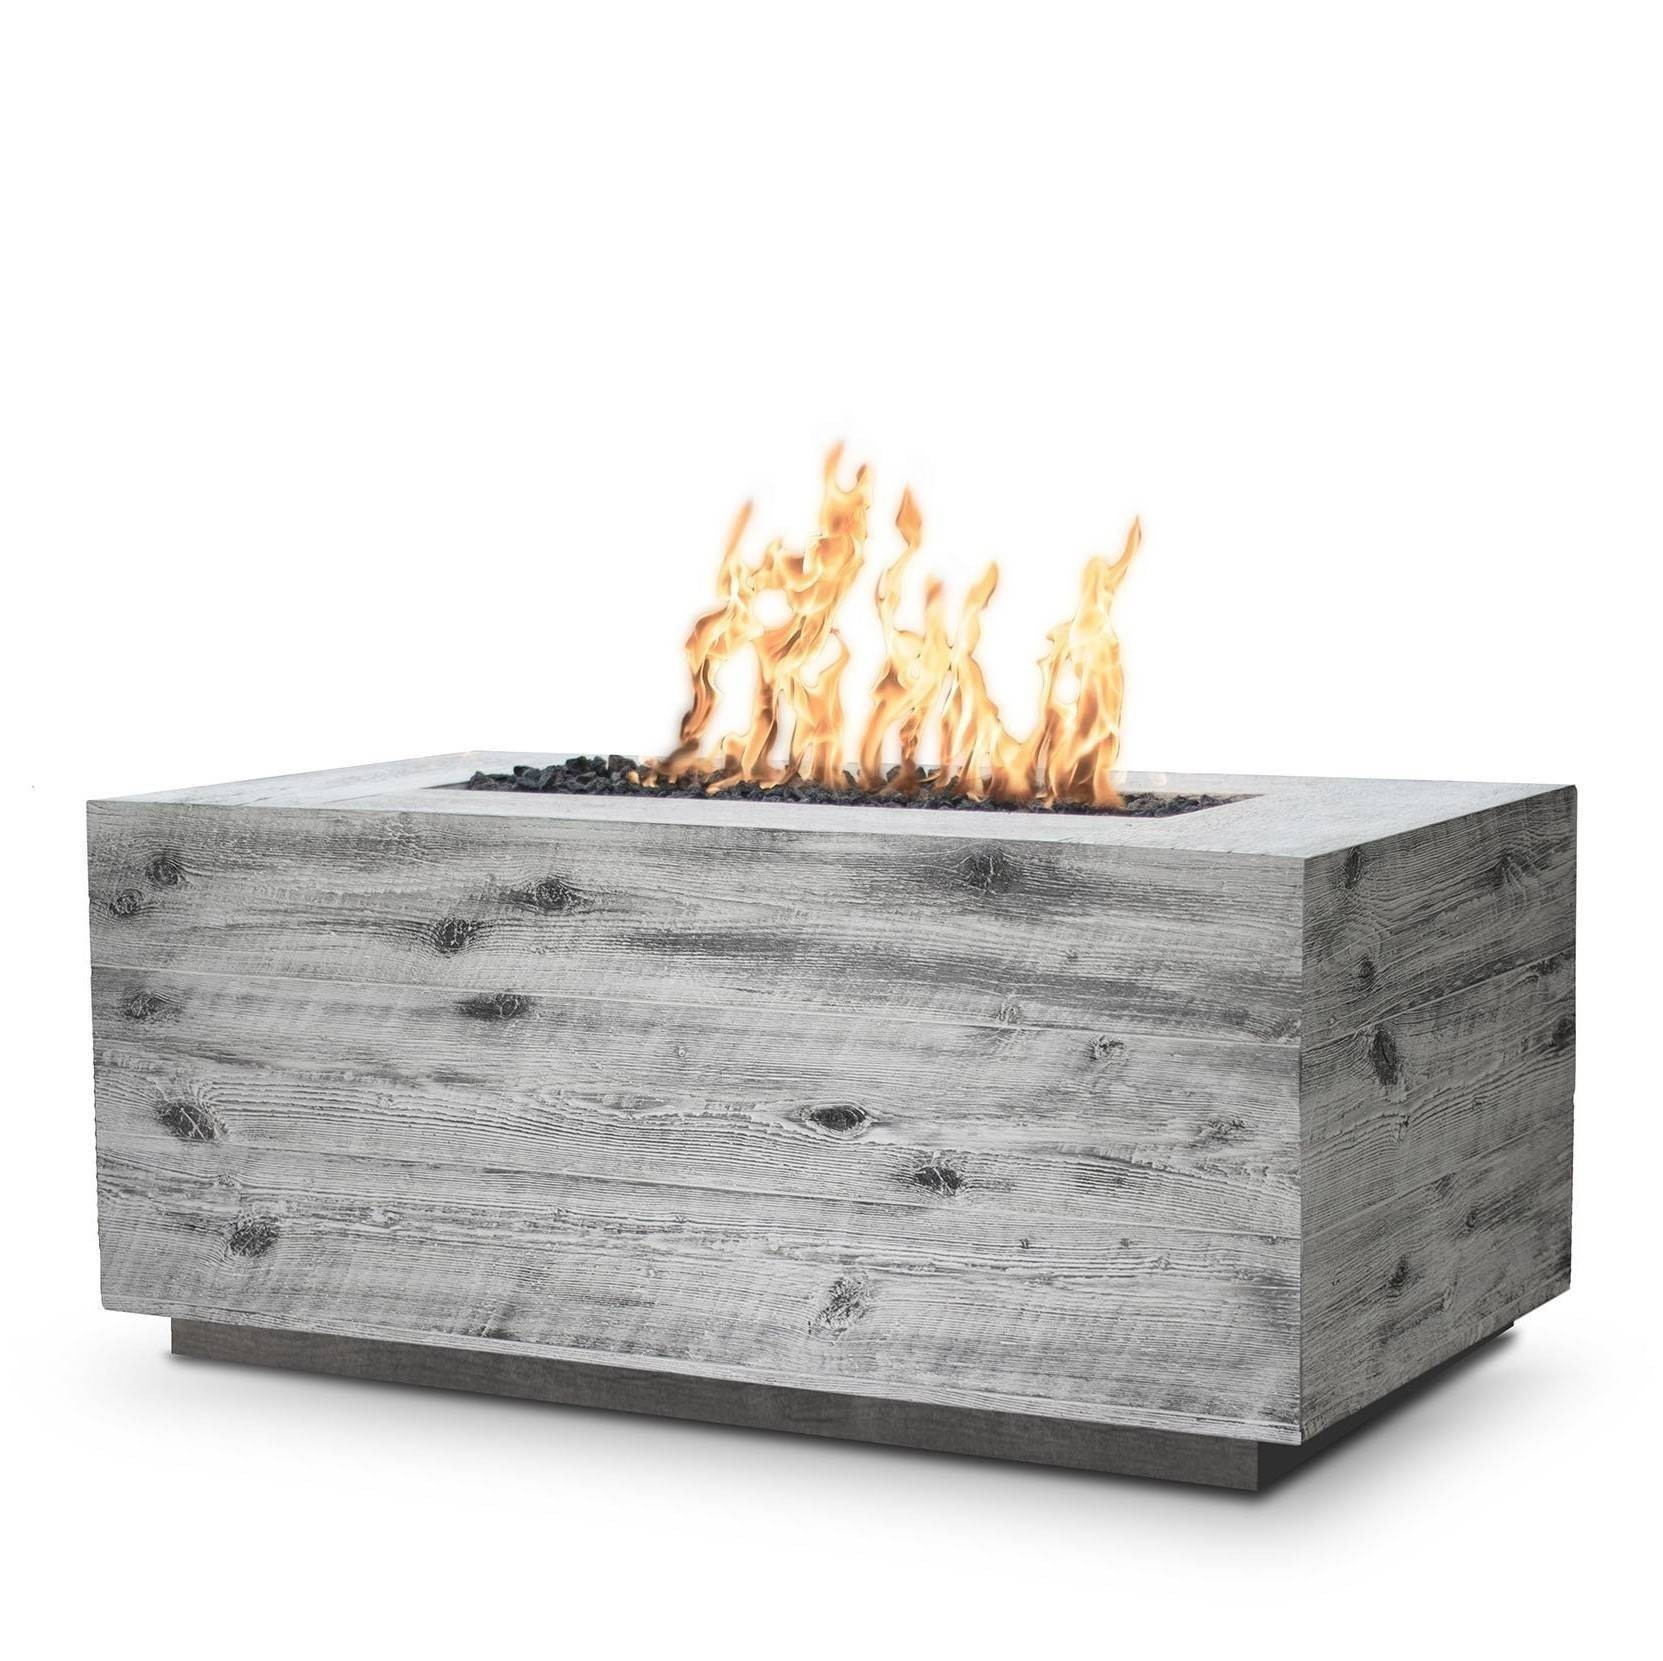 "48"" Catalina Wood Grain Concrete Fire Pit Table - Ivory"